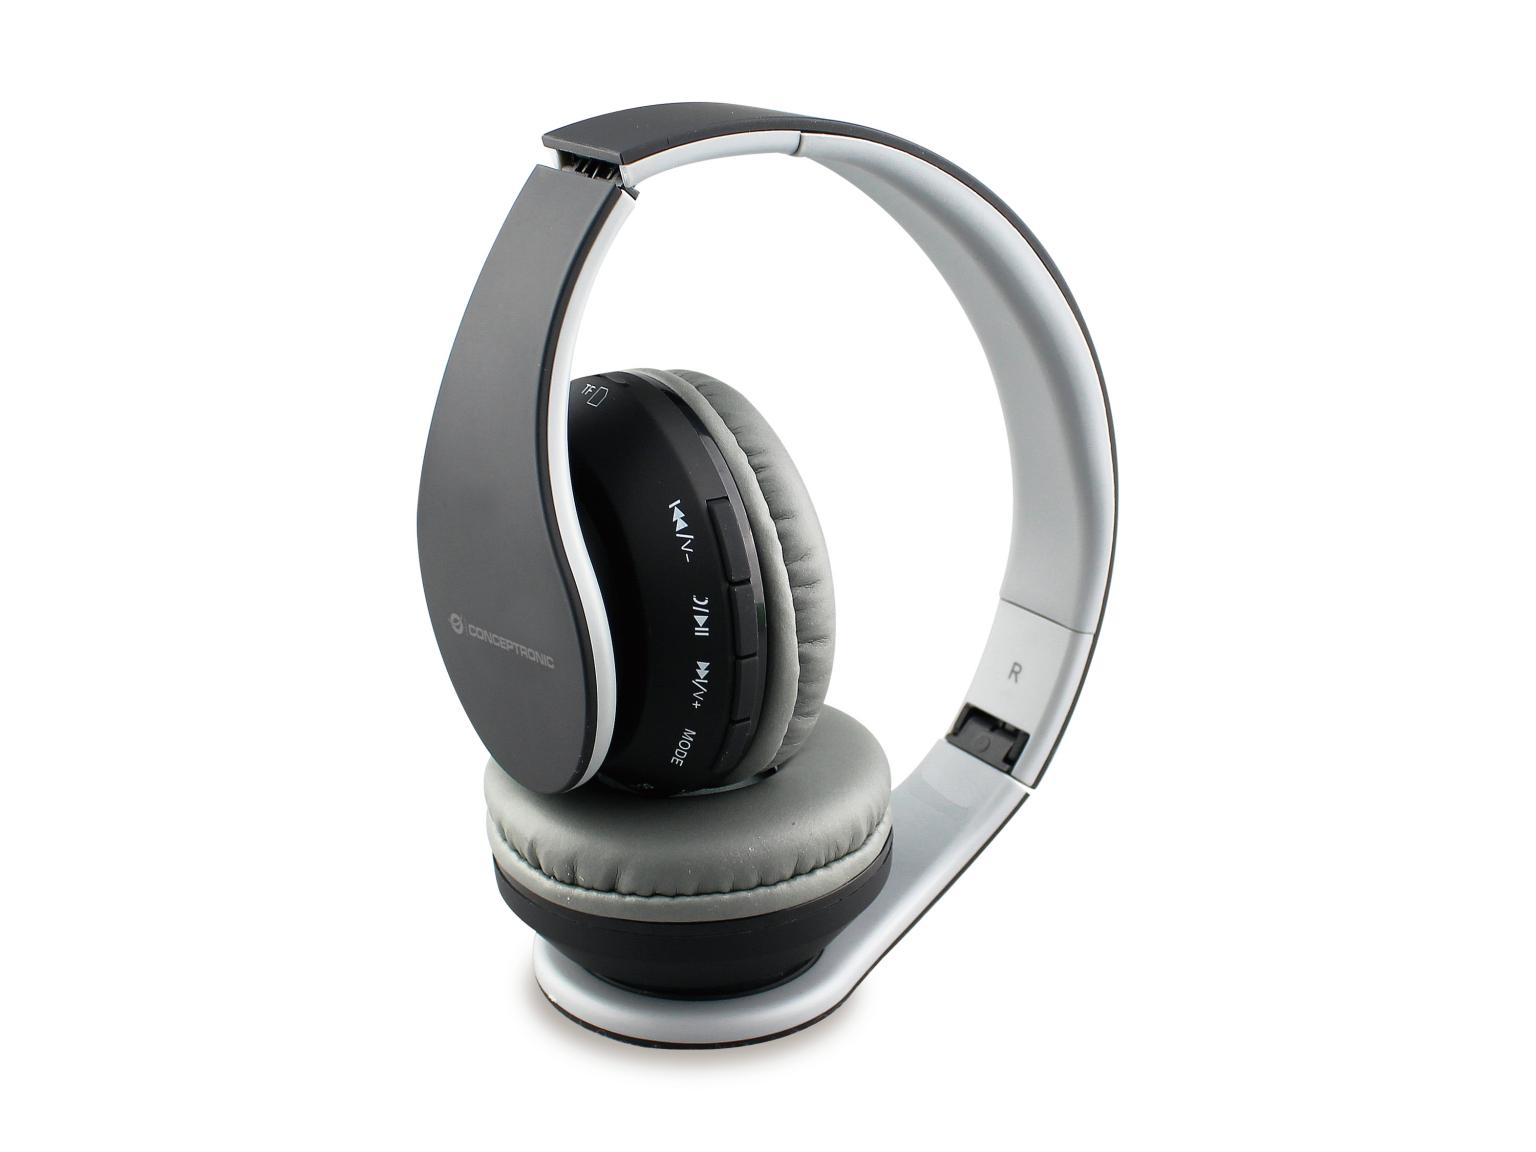 Bluetooth headset - Conceptronic